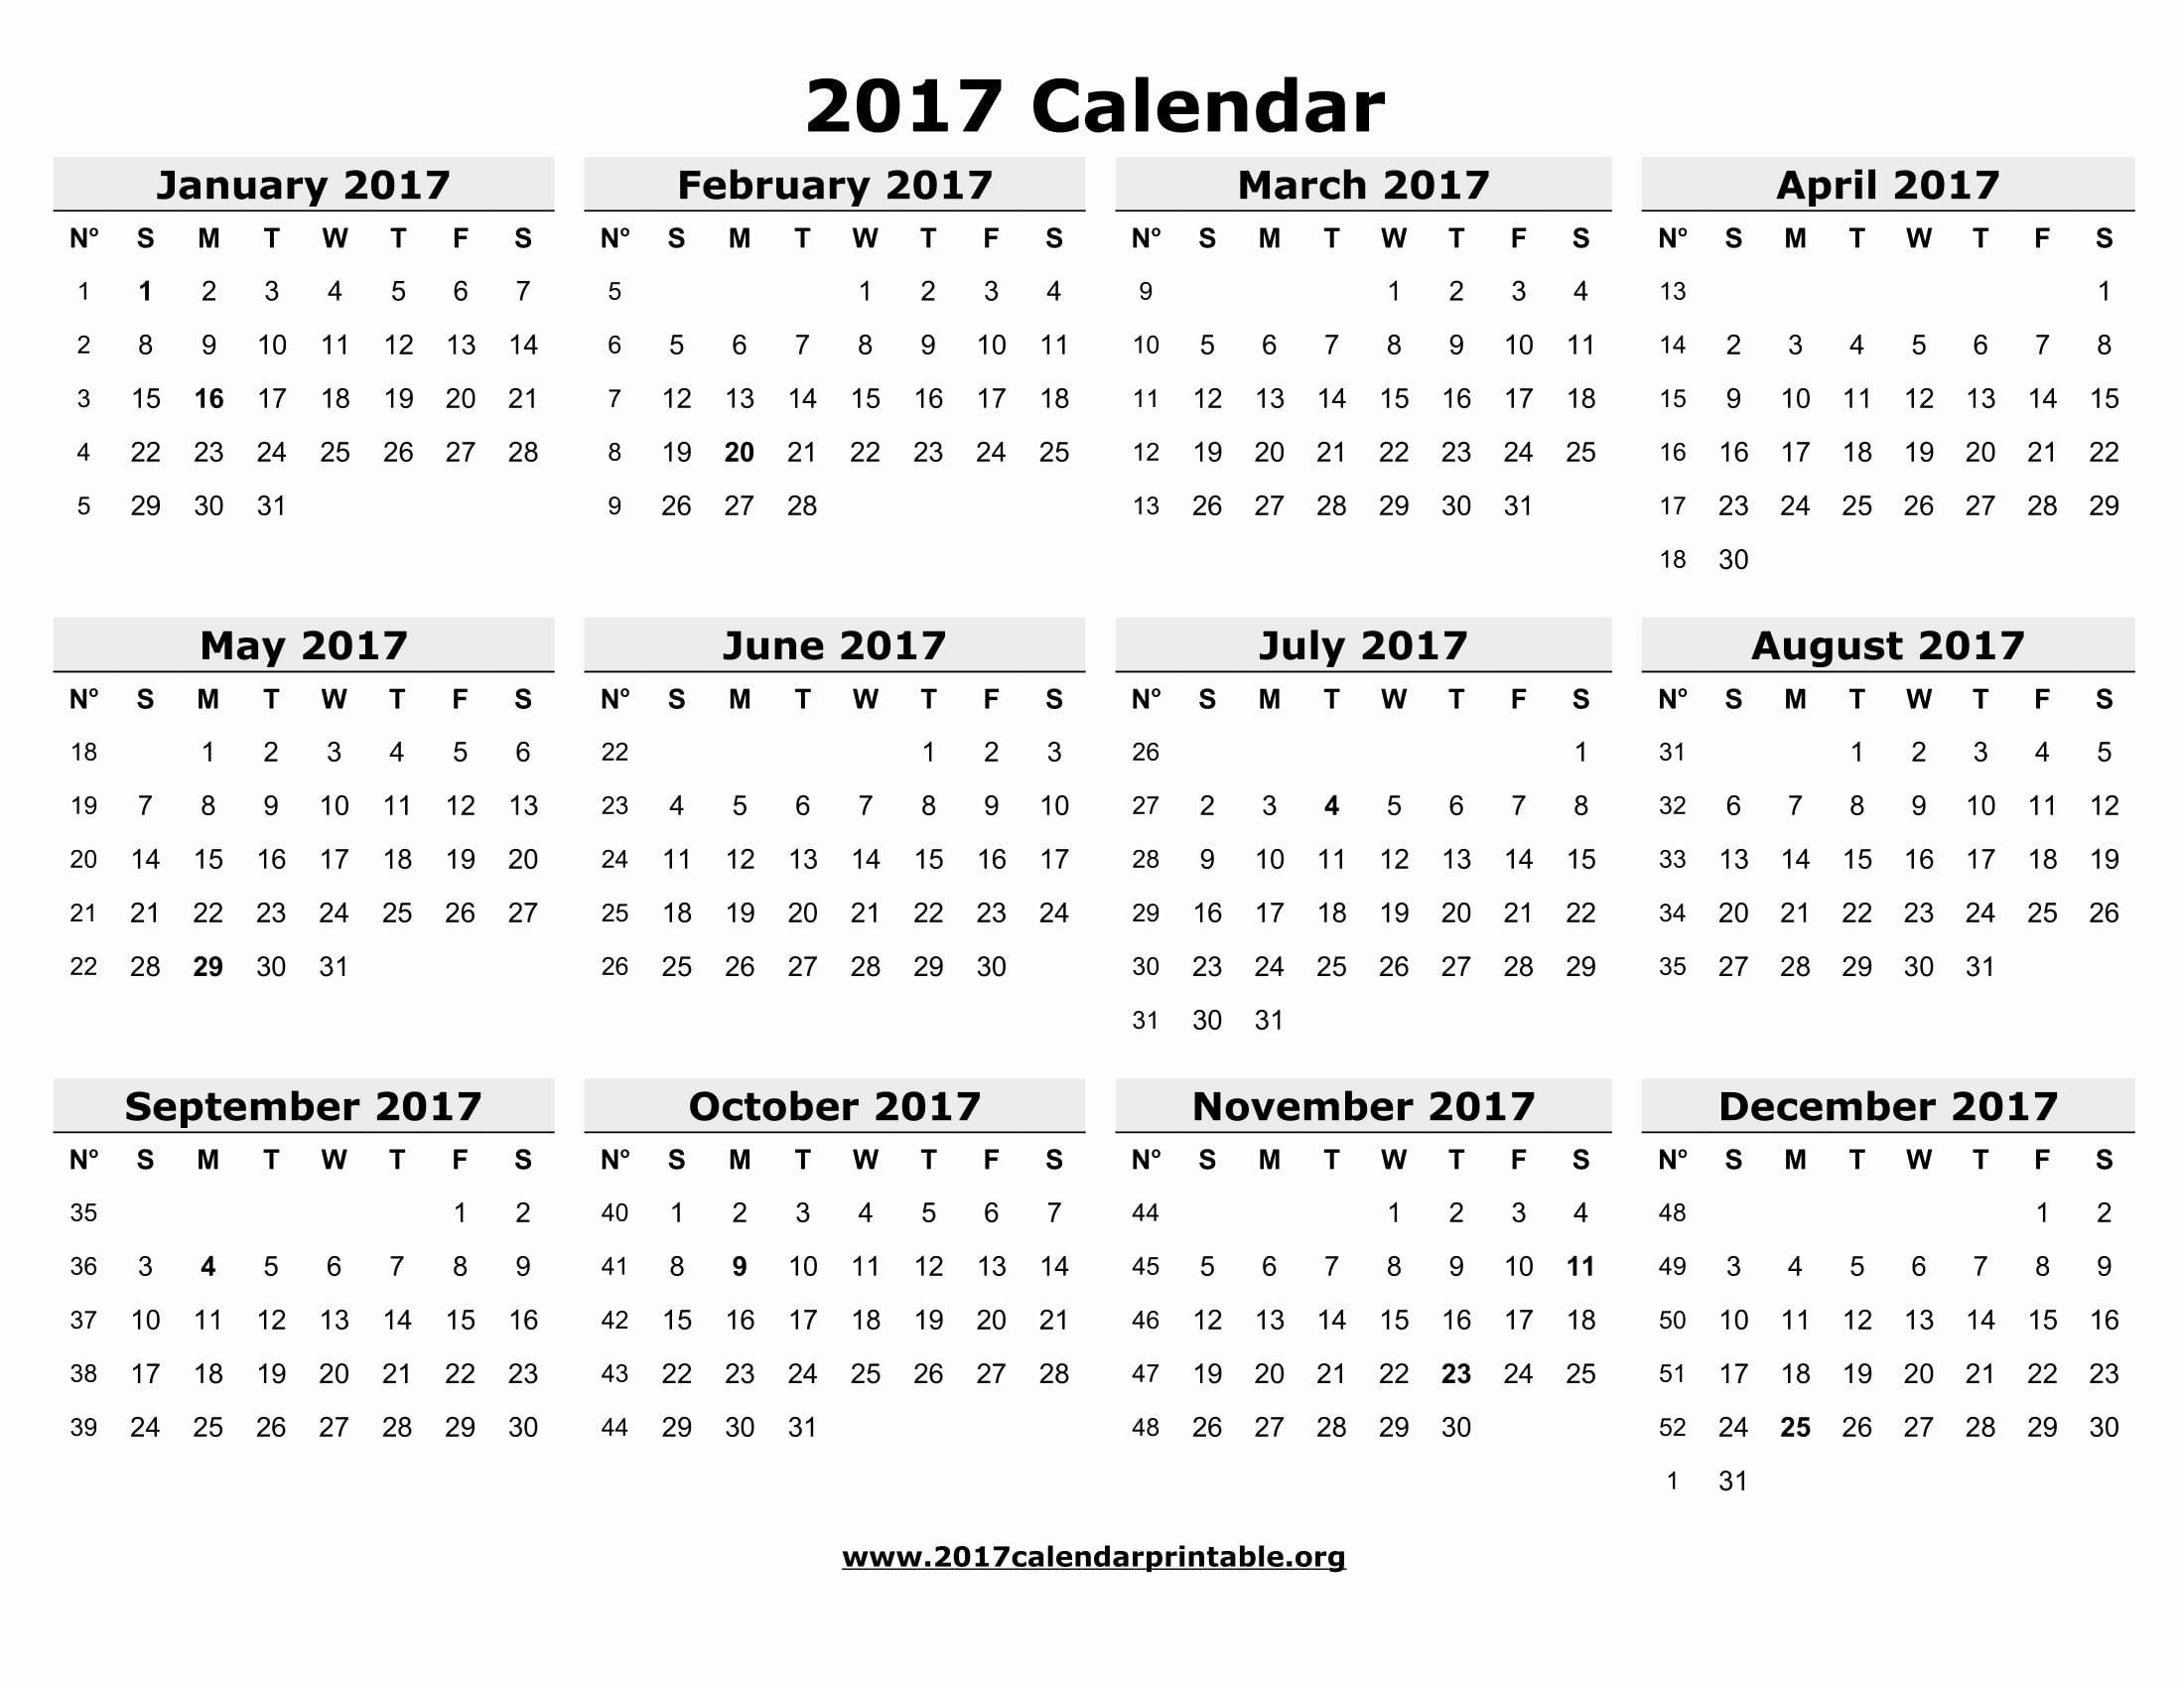 Free Printable Quarterly Calendar 2017 Lovely 12 Month Calendar 2017 Printable with Notes